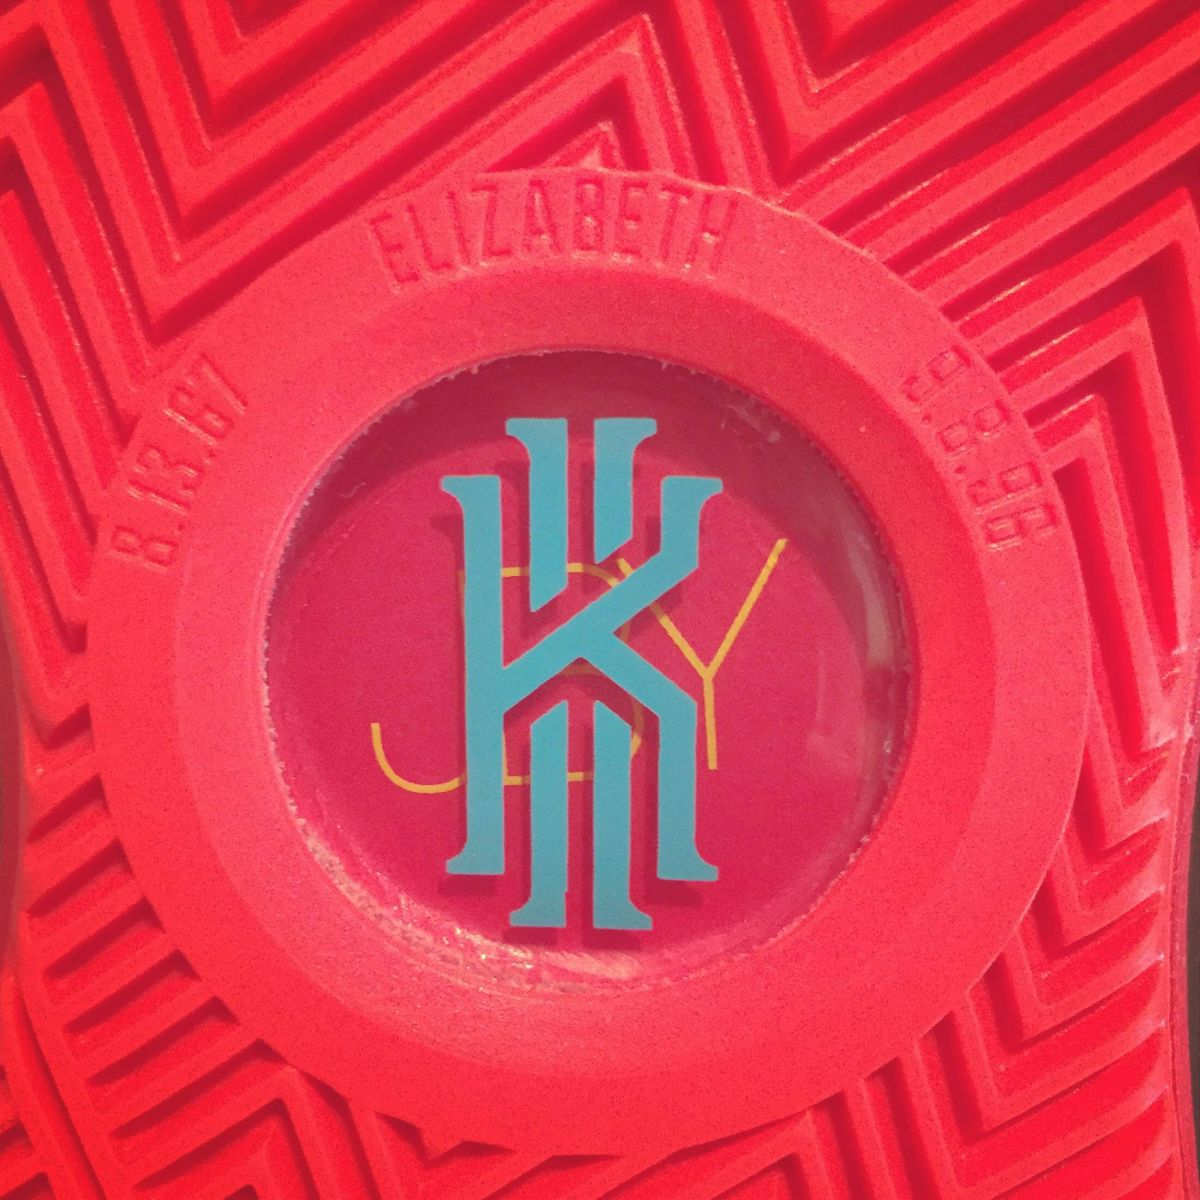 kyrie irving shoes logo